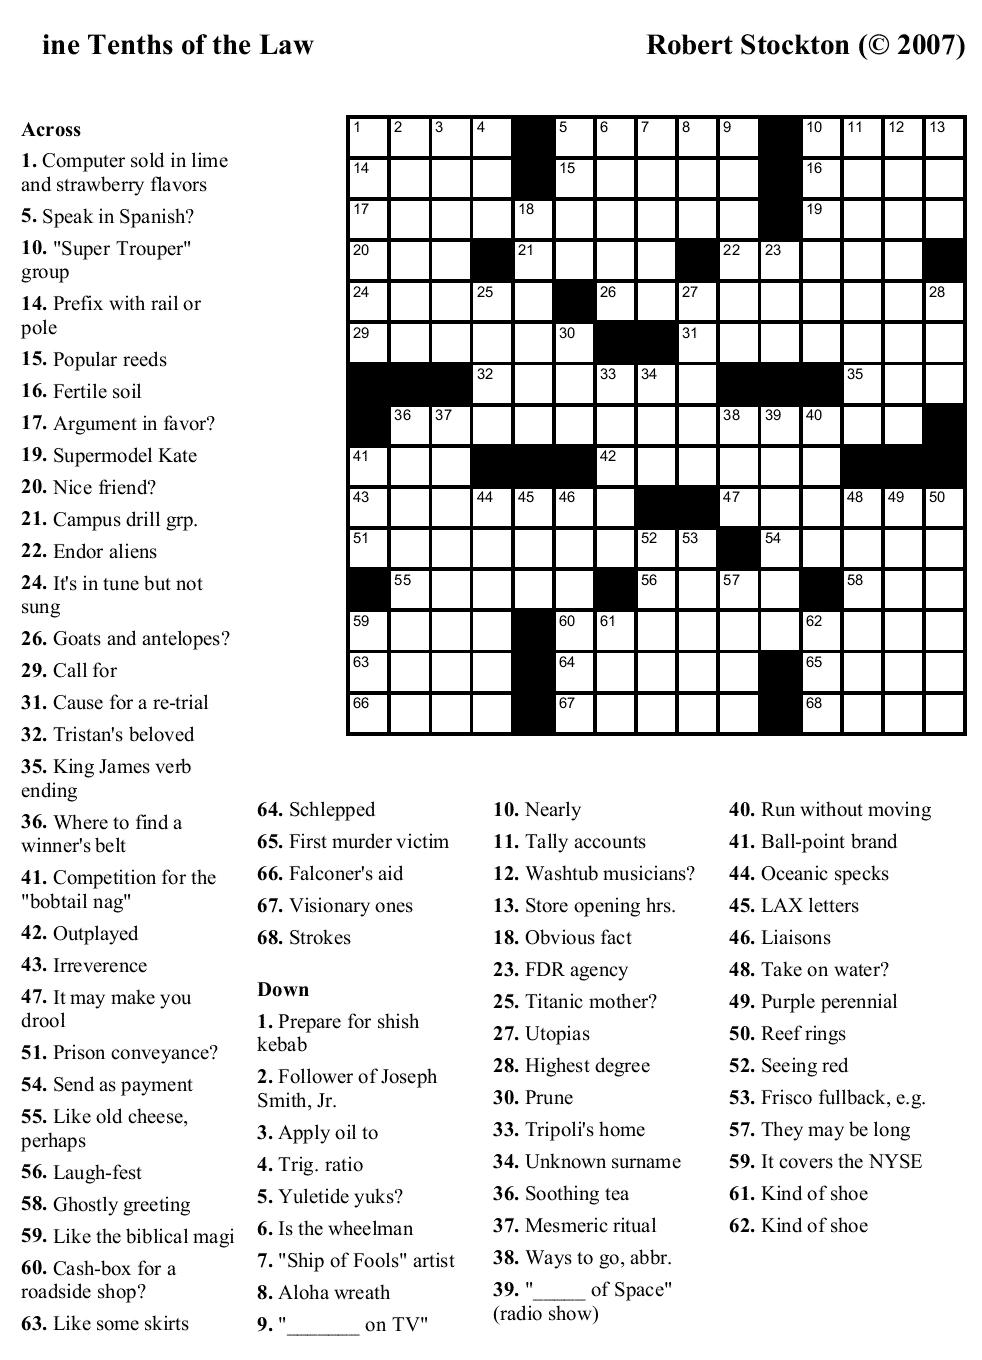 Crossword Puzzles Printable - Yahoo Image Search Results | Crossword - Print Free Crossword Puzzles Online